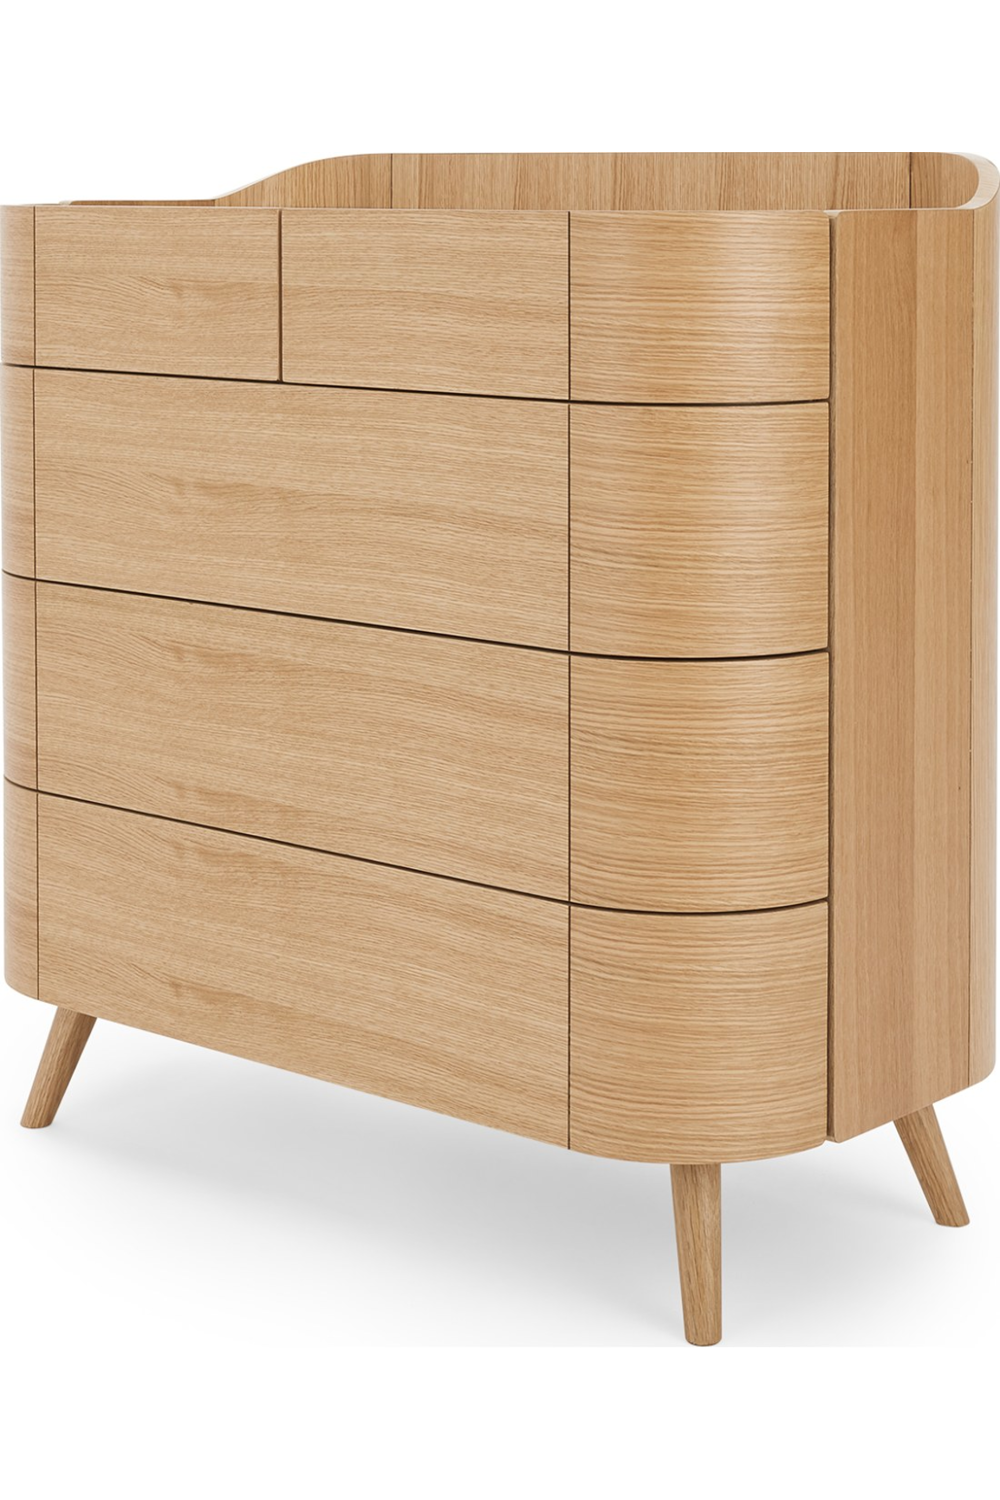 Ada 5 Drawer Chest Of Drawers Oak Chest Of Drawers Design Modern Drawers Chest Of Drawers